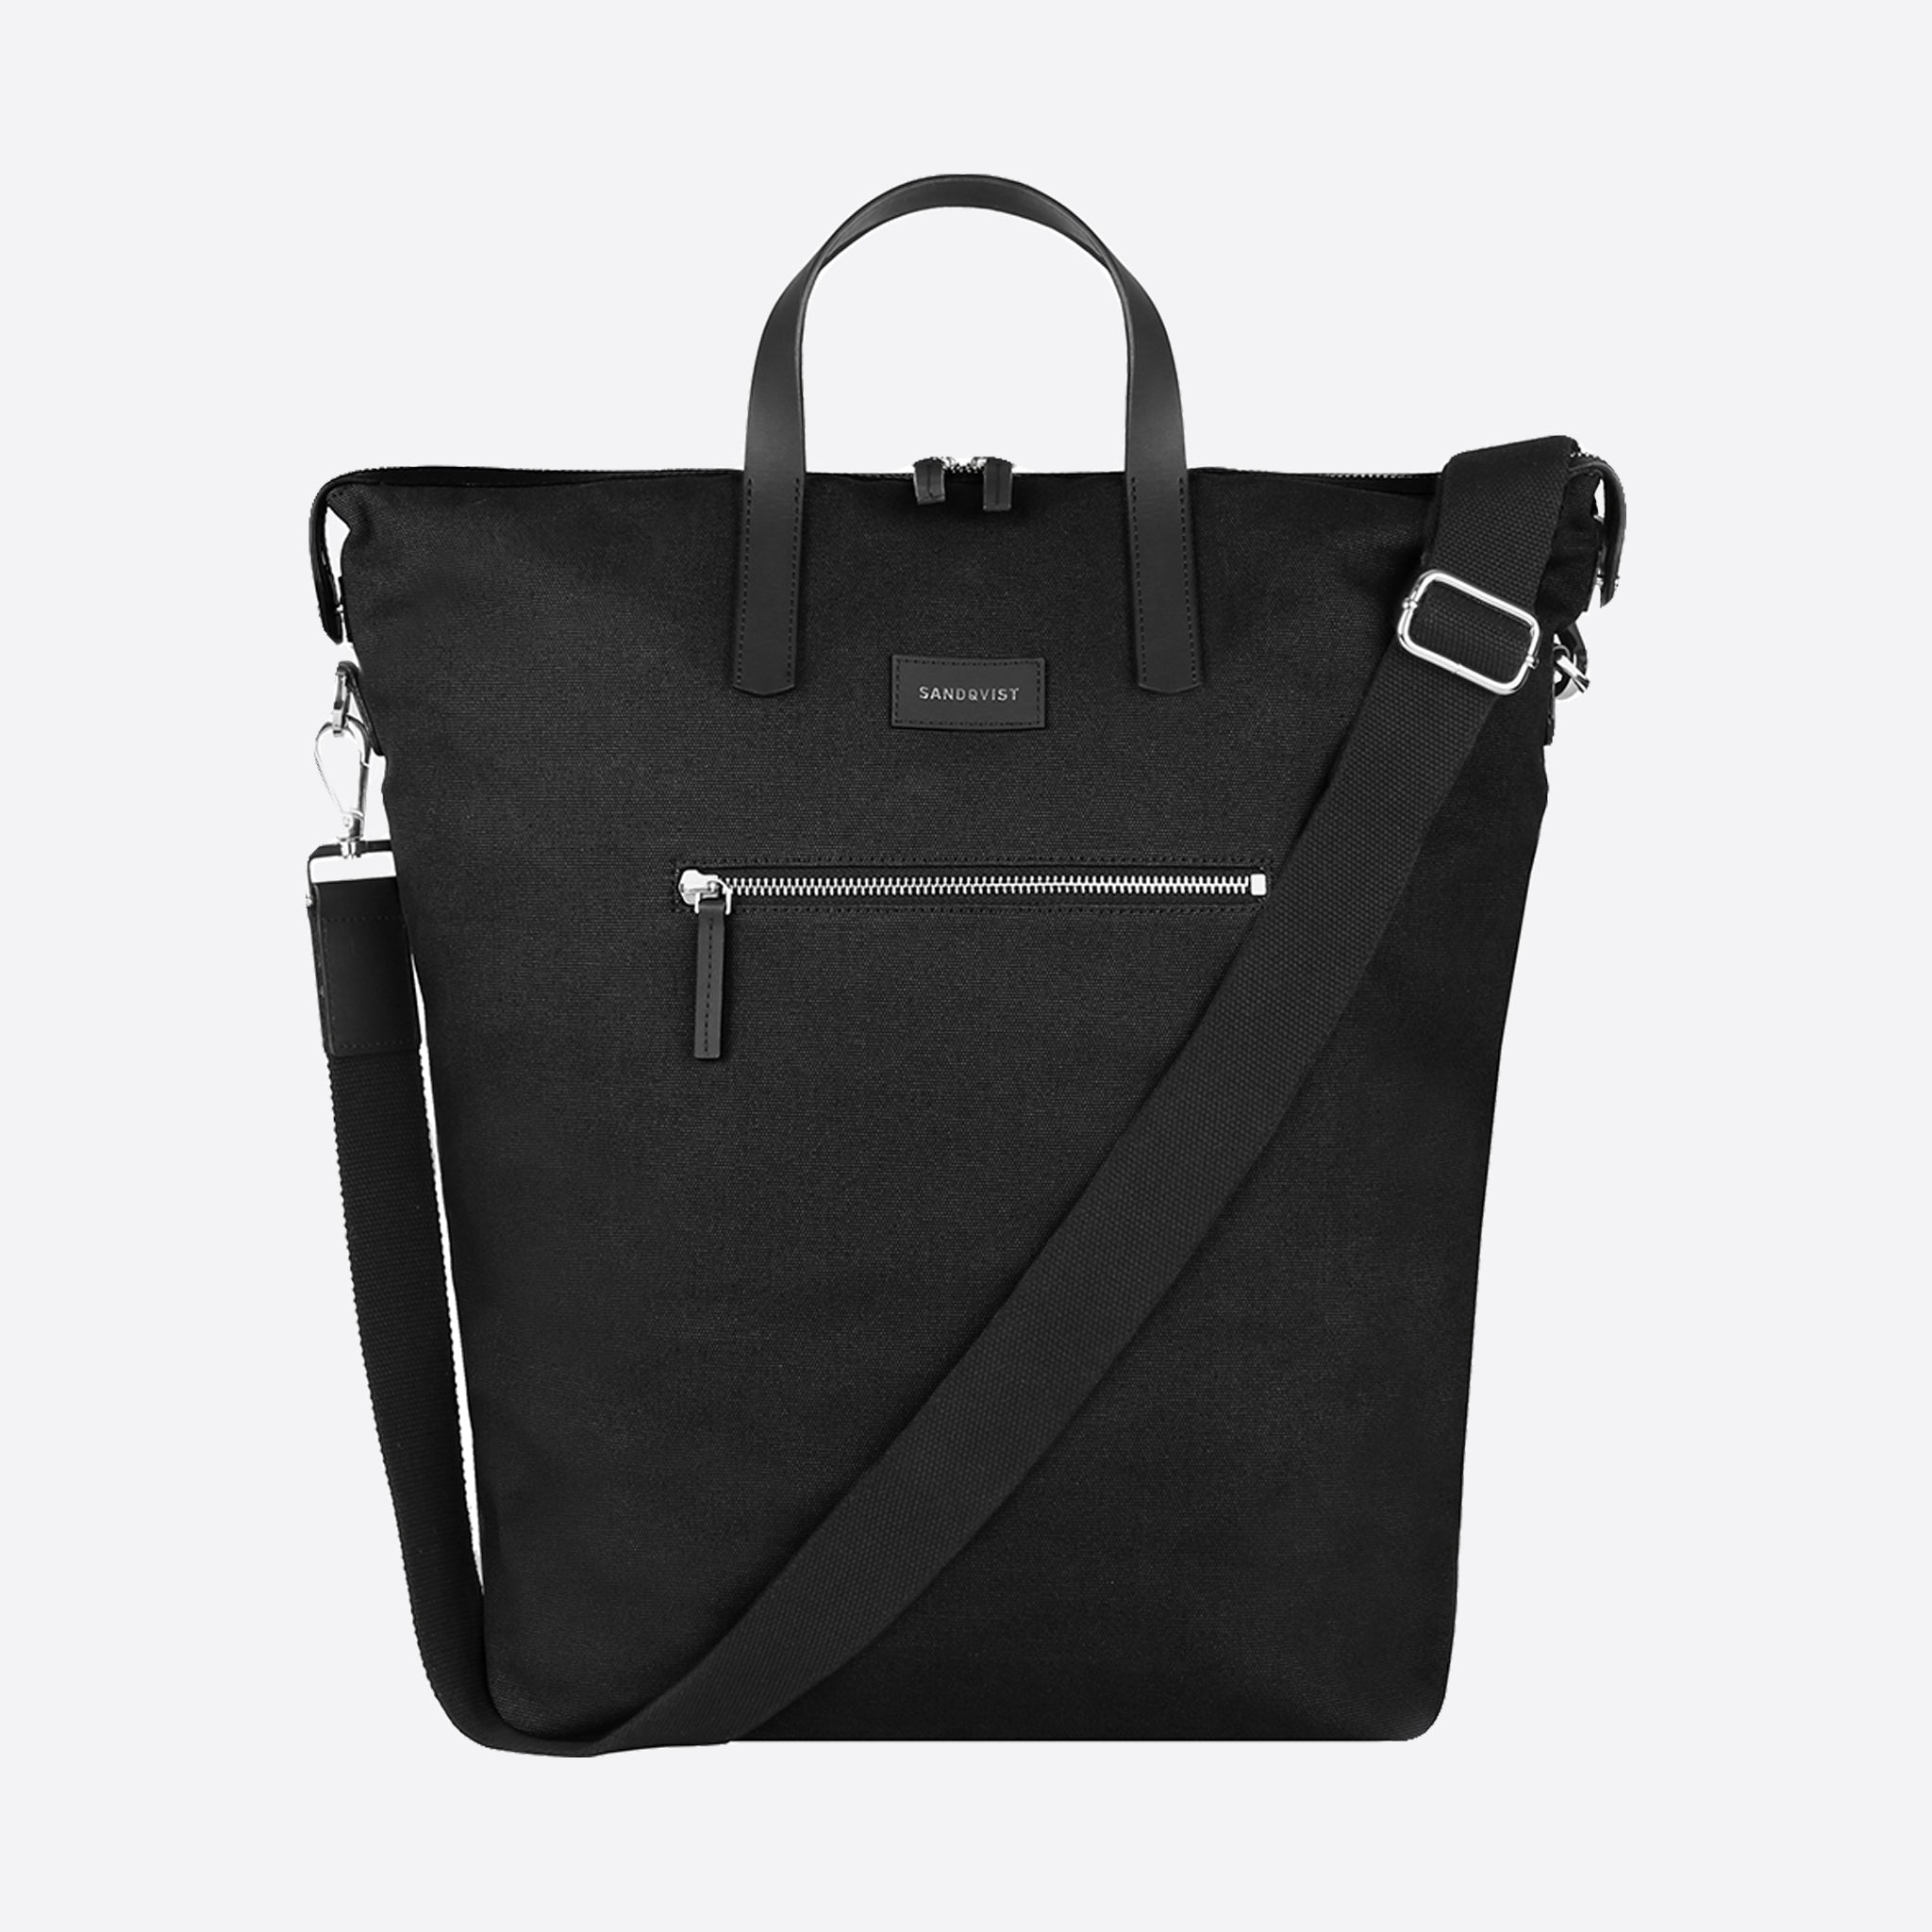 Sandqvist Jussi Bag in Black